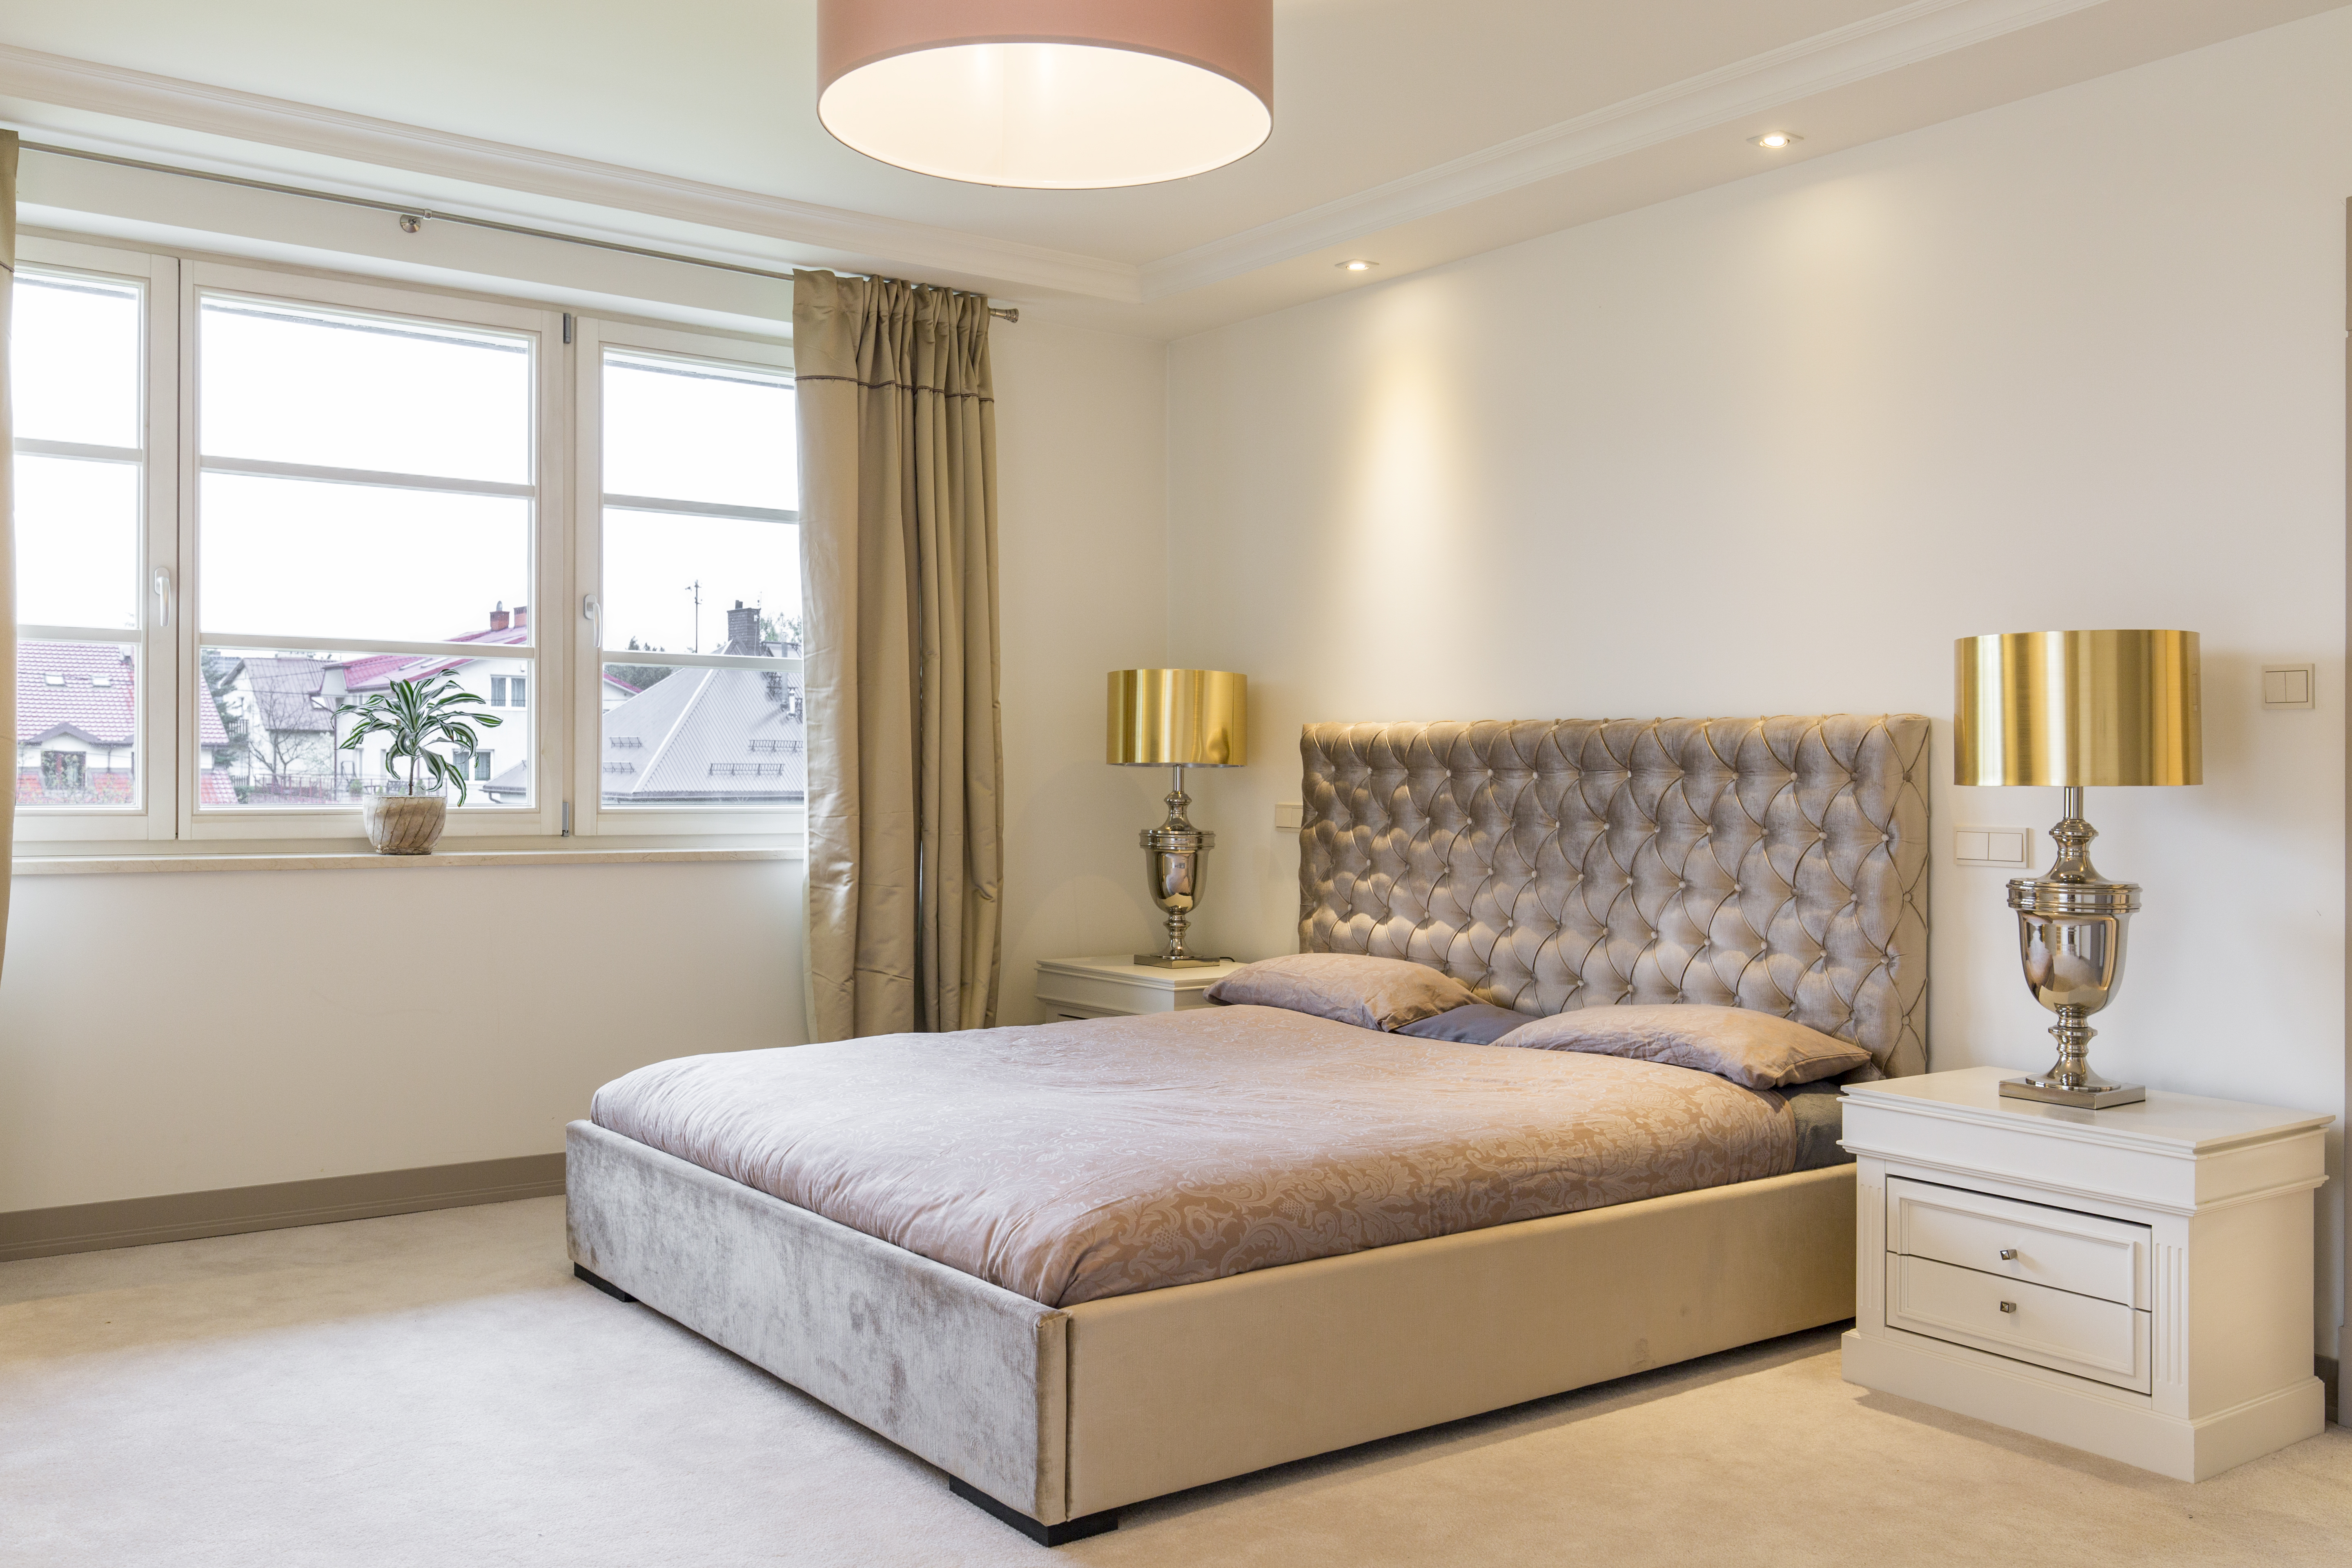 10 Best Upholstered Bed Designs With Trending Photos In 2020